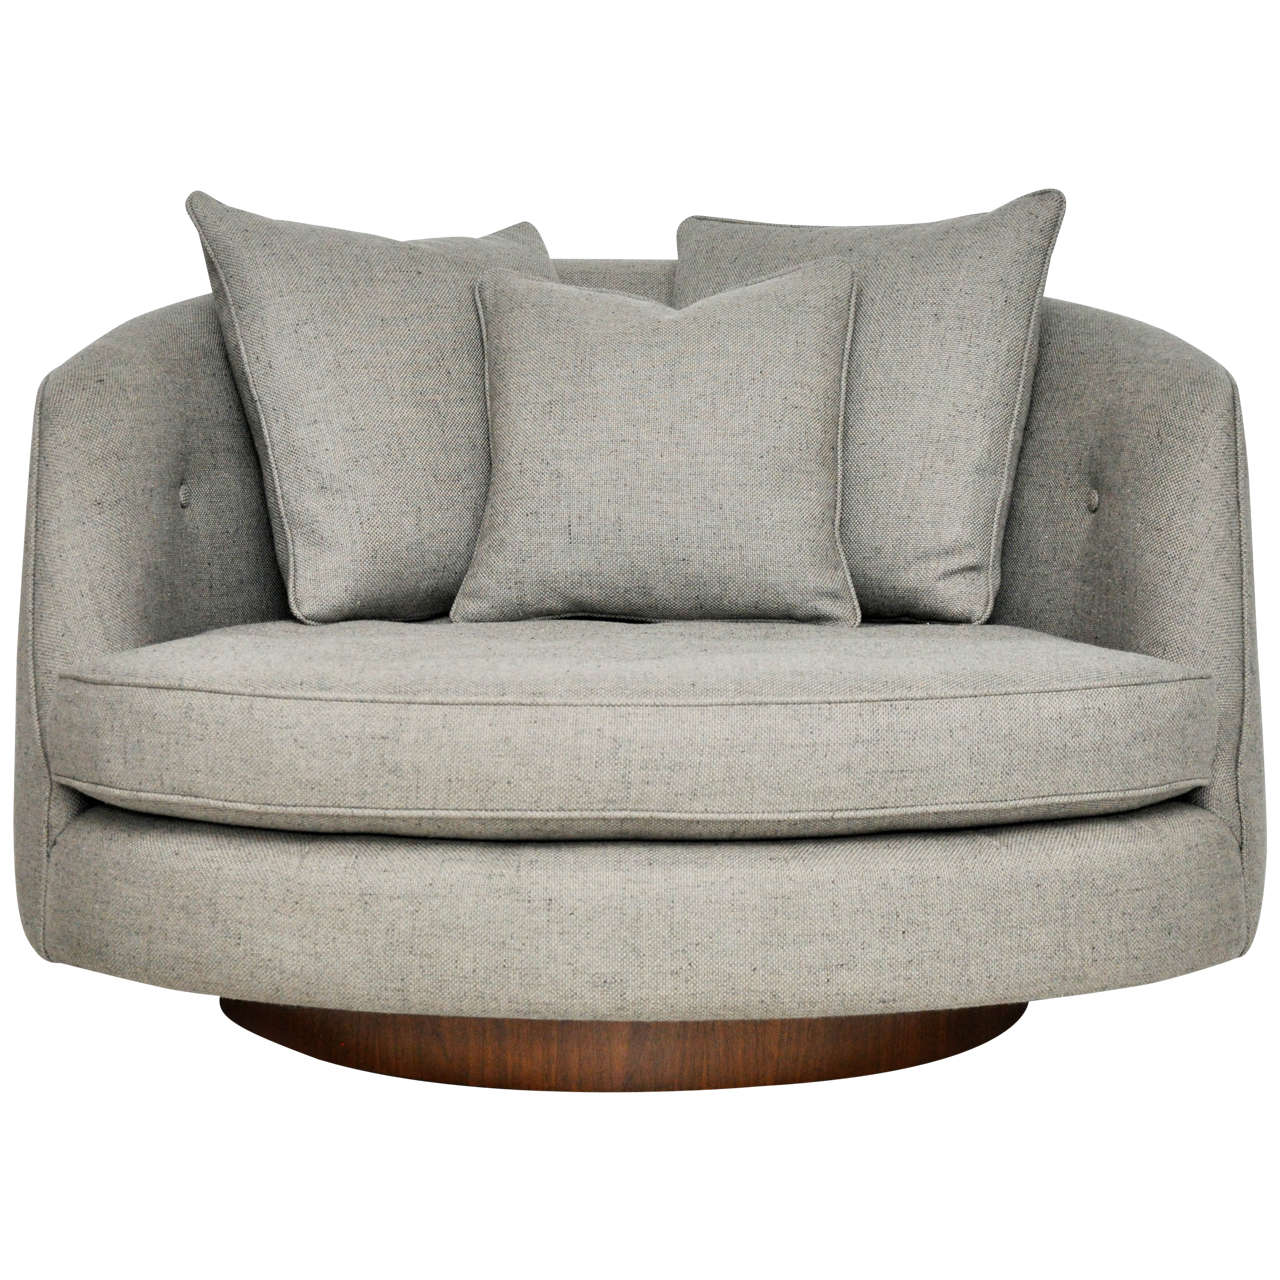 Oversized Circle Chair Milo Baughman Large Swivel Chair At 1stdibs